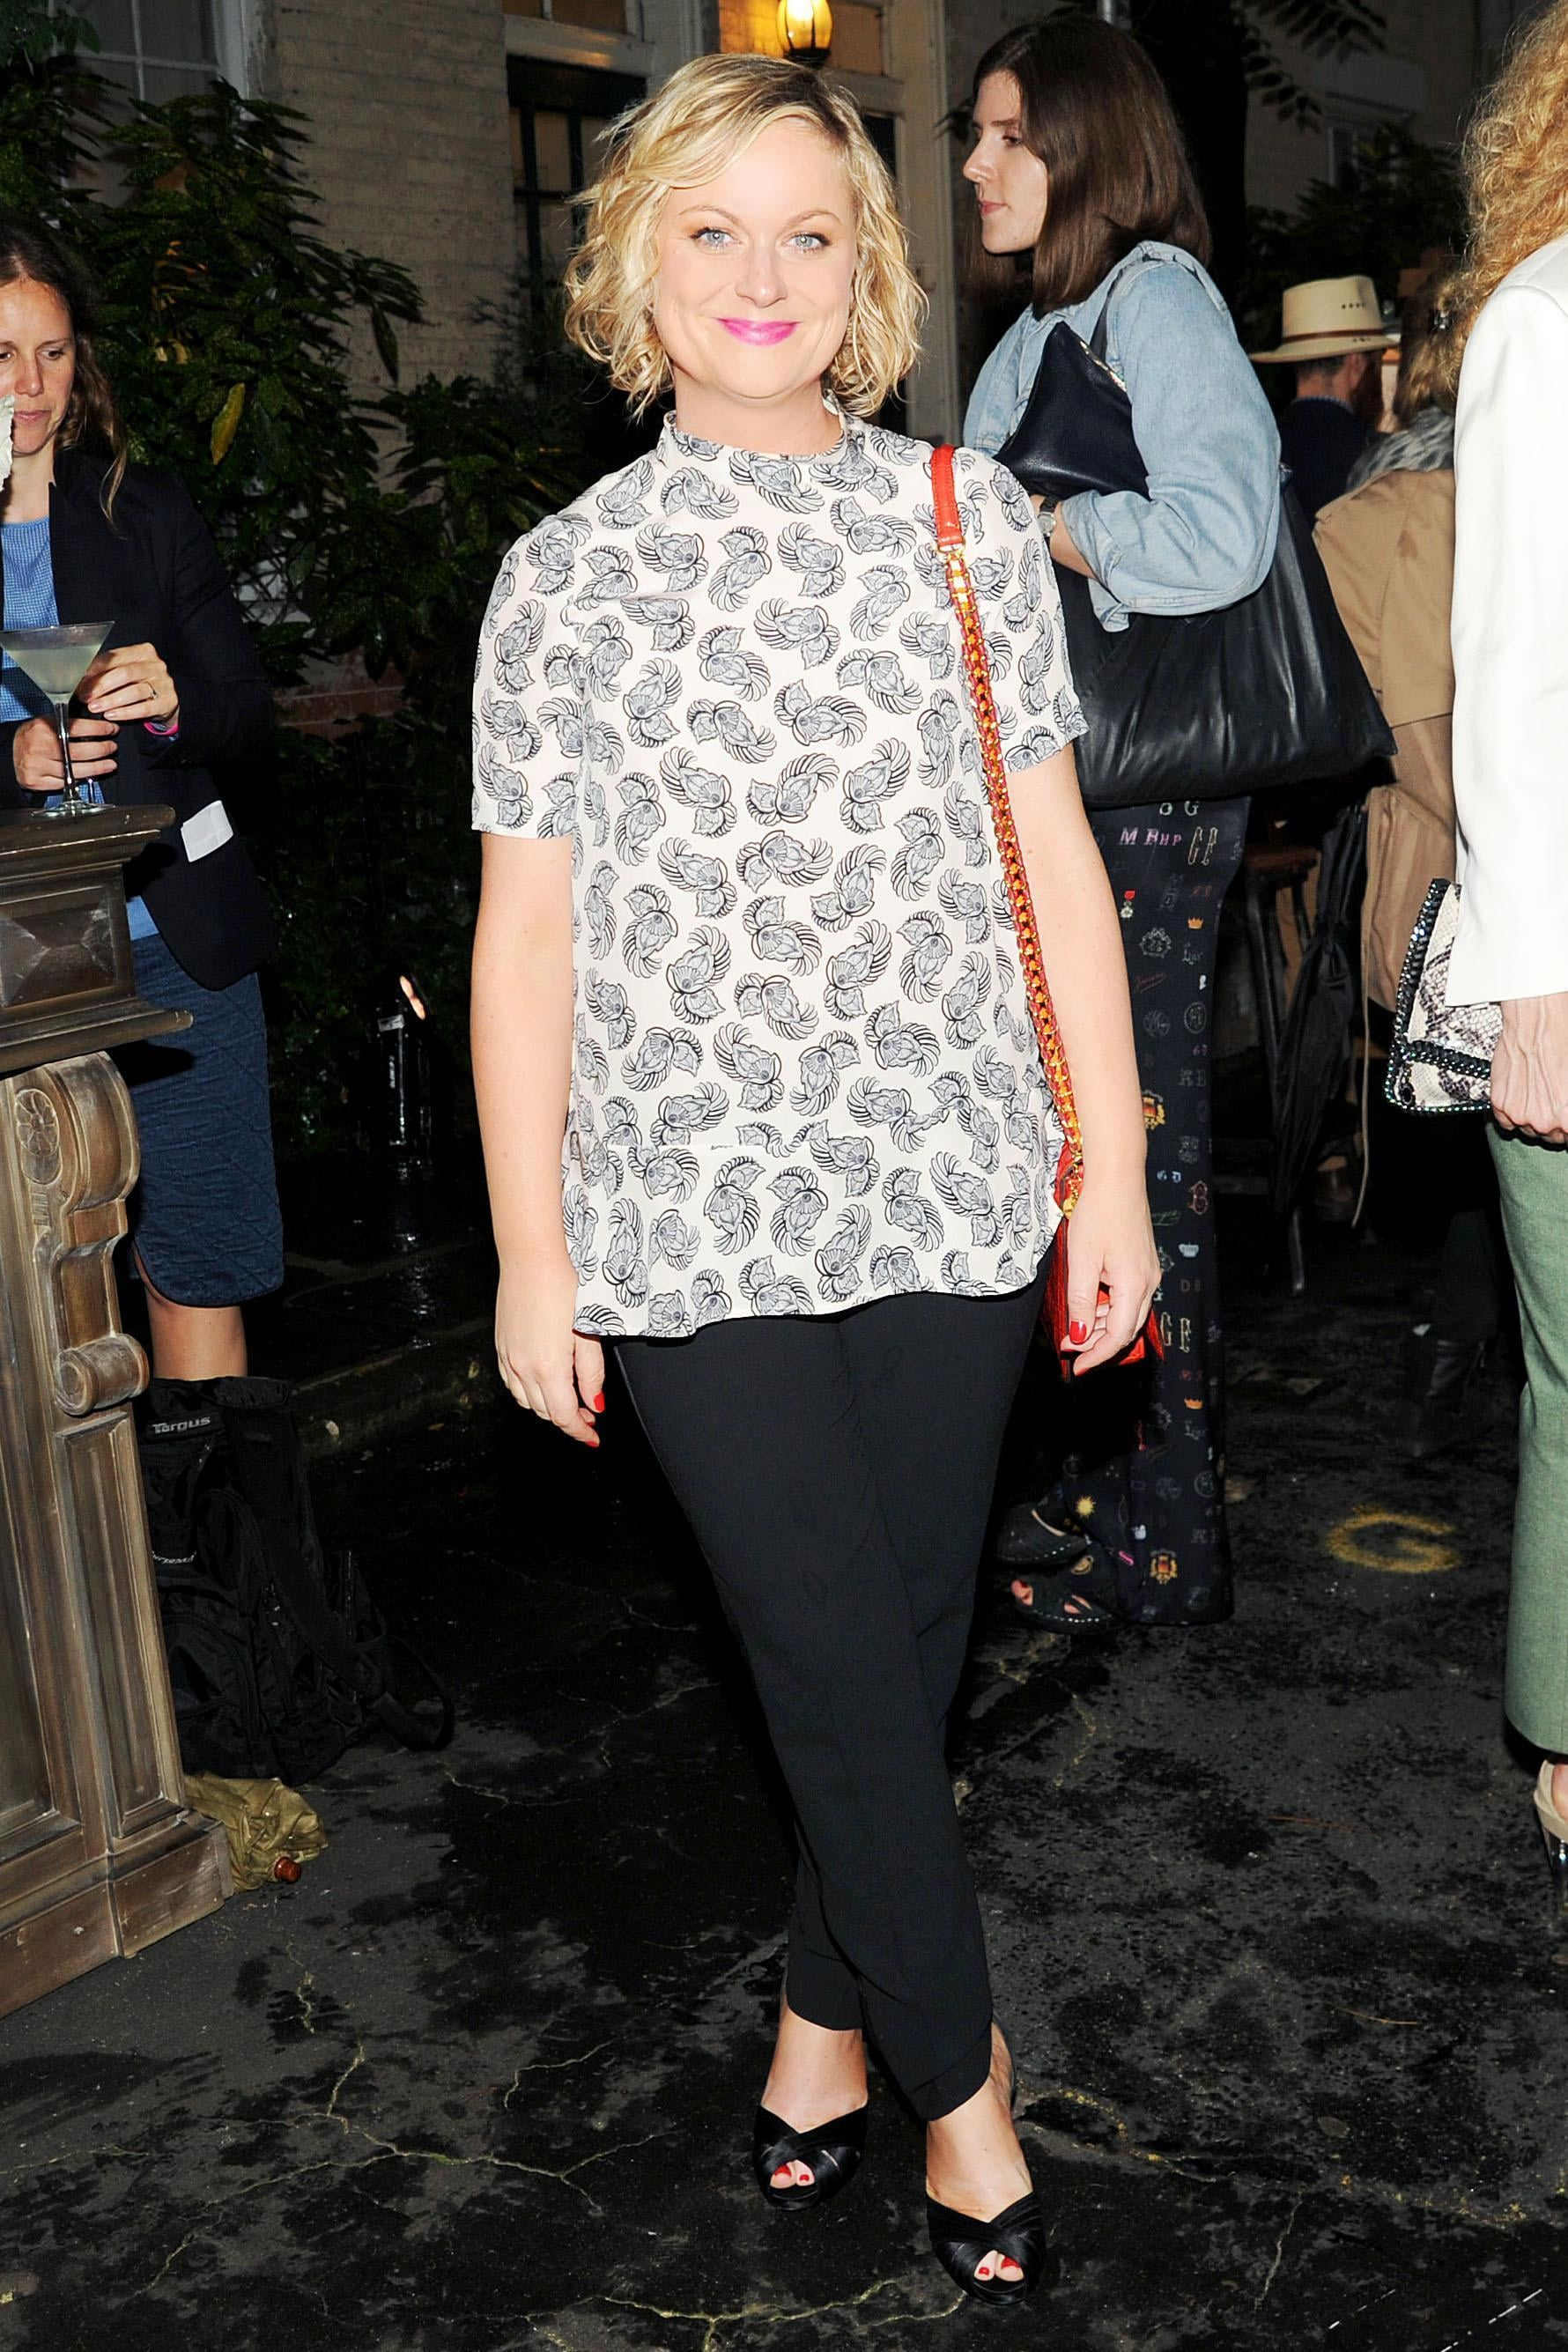 Amy Poehler at Stella McCartney's Resort 2014 presentation. Source: Billy Farrell/BFAnyc.com